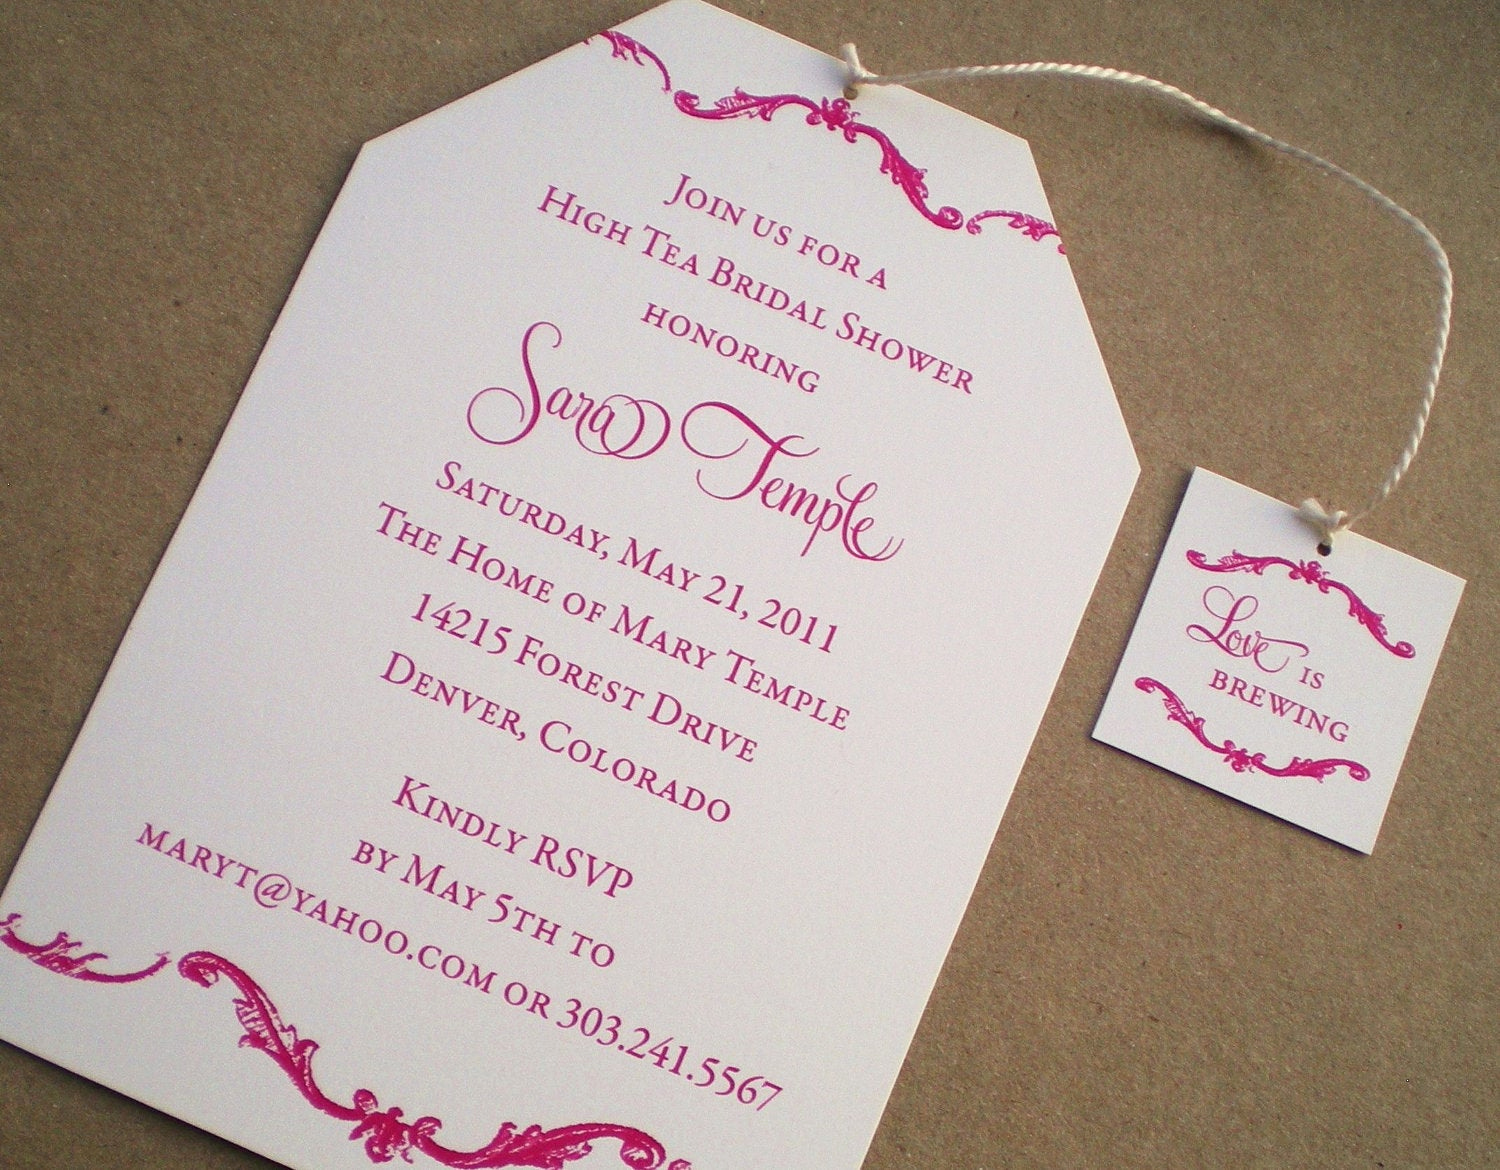 Hi Tea Invitation Templates Awesome High Tea Bridal Shower Invitations by Ideachic On Etsy